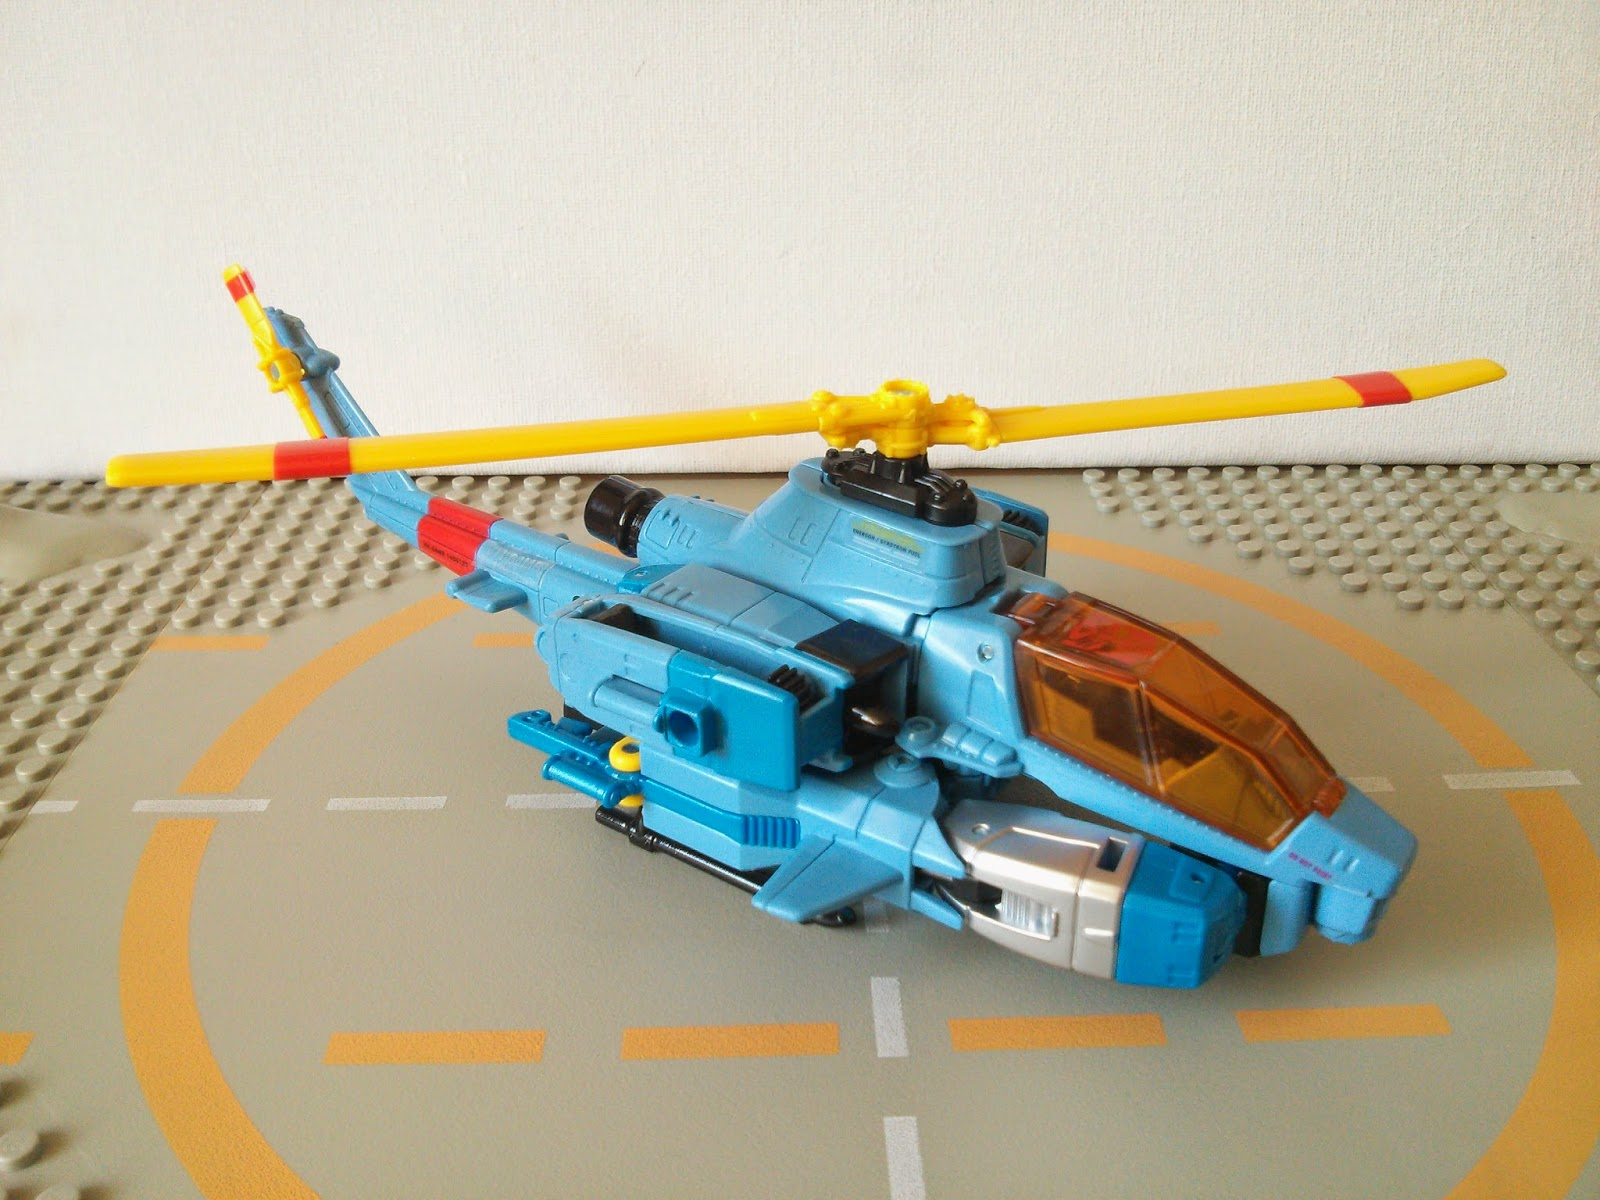 Whirl in helicopter mode